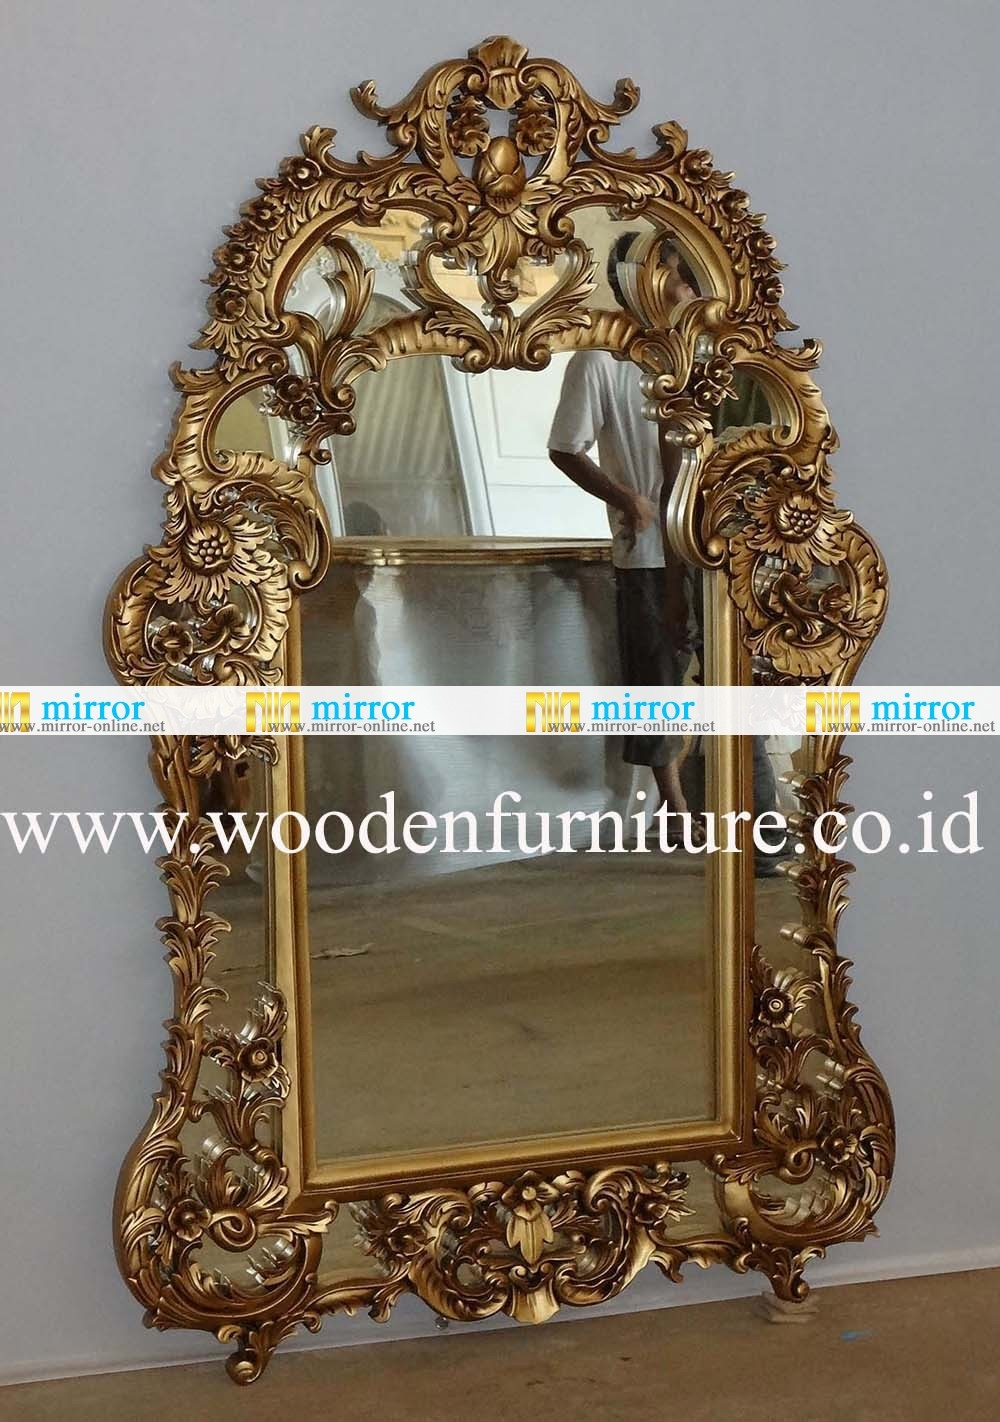 French Reproduction Mirror French Reproduction Mirror Products With Regard To Reproduction Mirrors (Image 10 of 15)